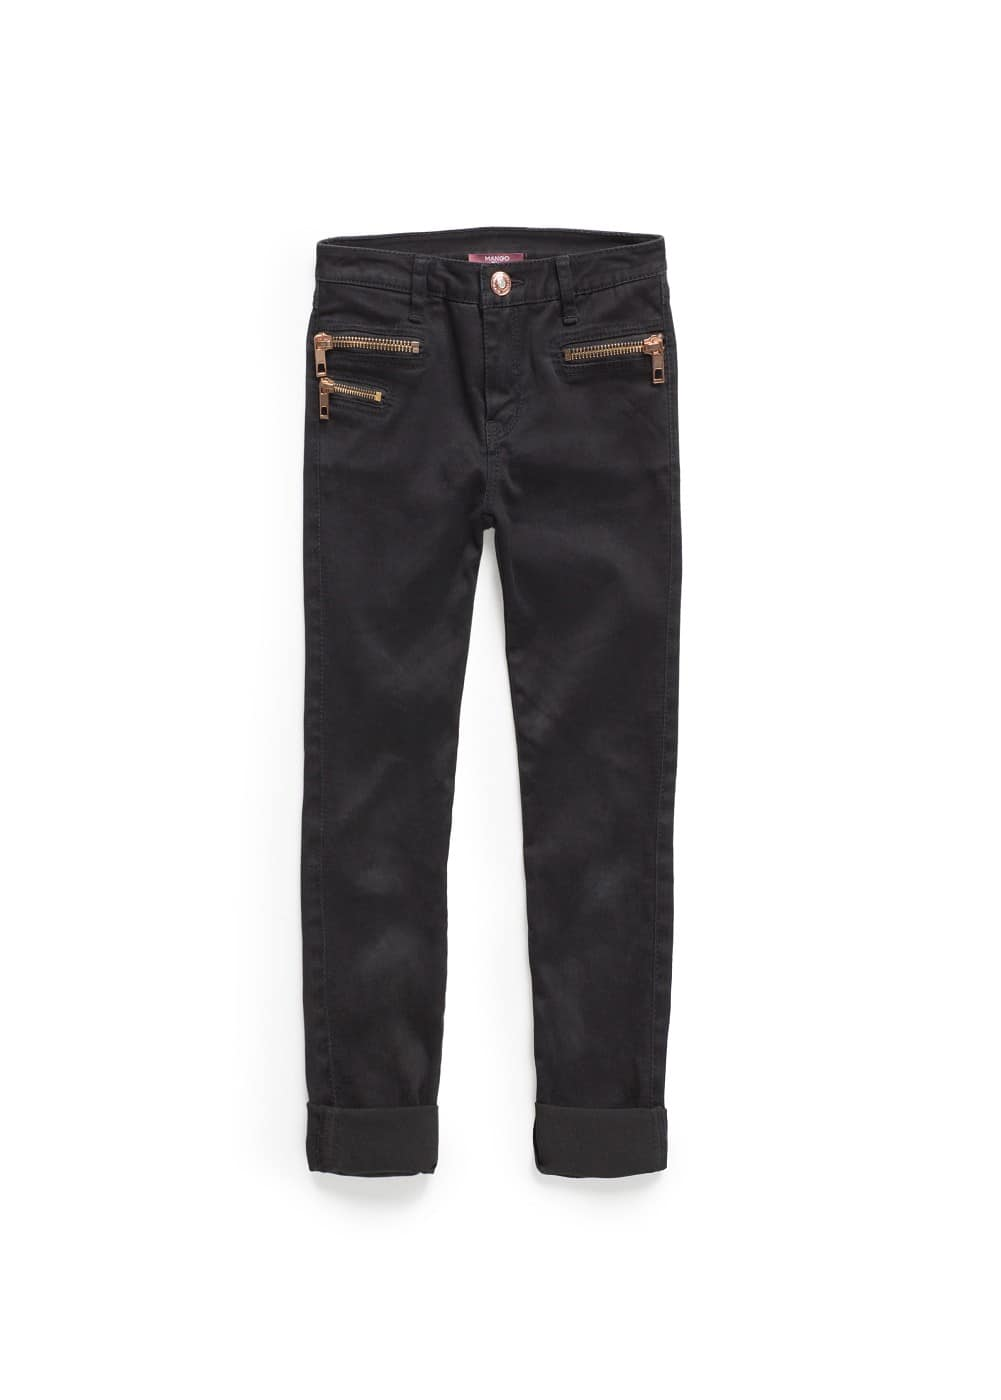 Black zippers jeans